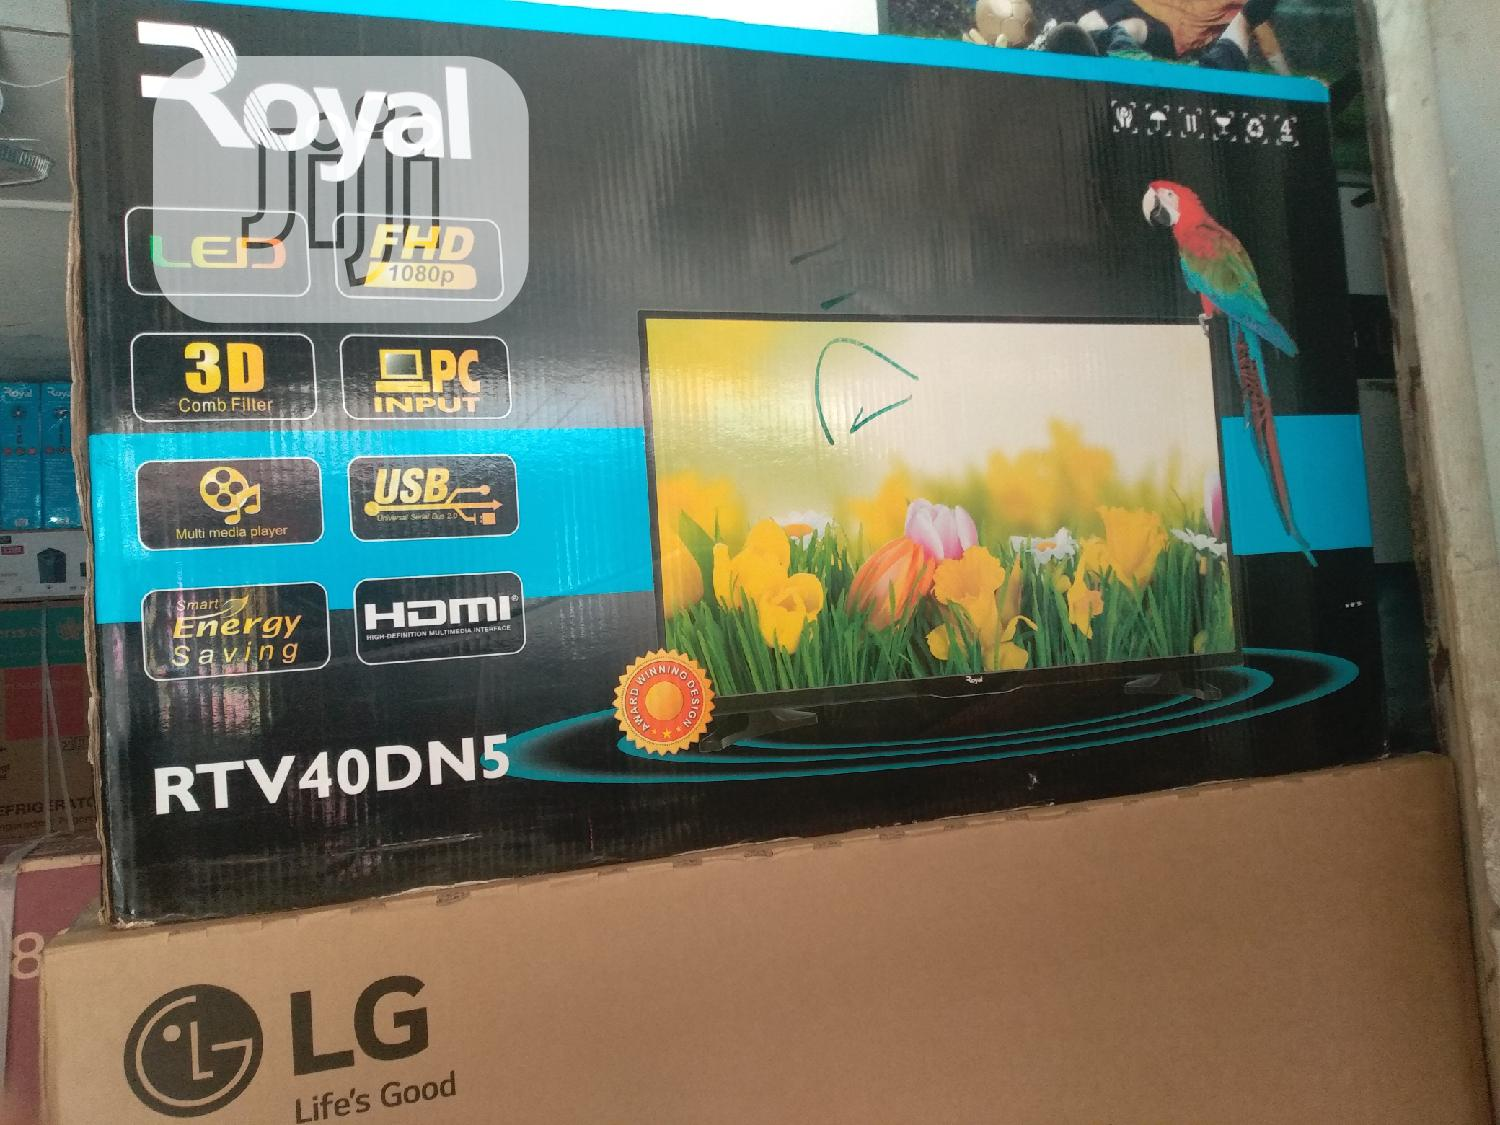 Royal Television 40inches Led Tv Wirh 3d Combo Filter. | TV & DVD Equipment for sale in Wuse, Abuja (FCT) State, Nigeria